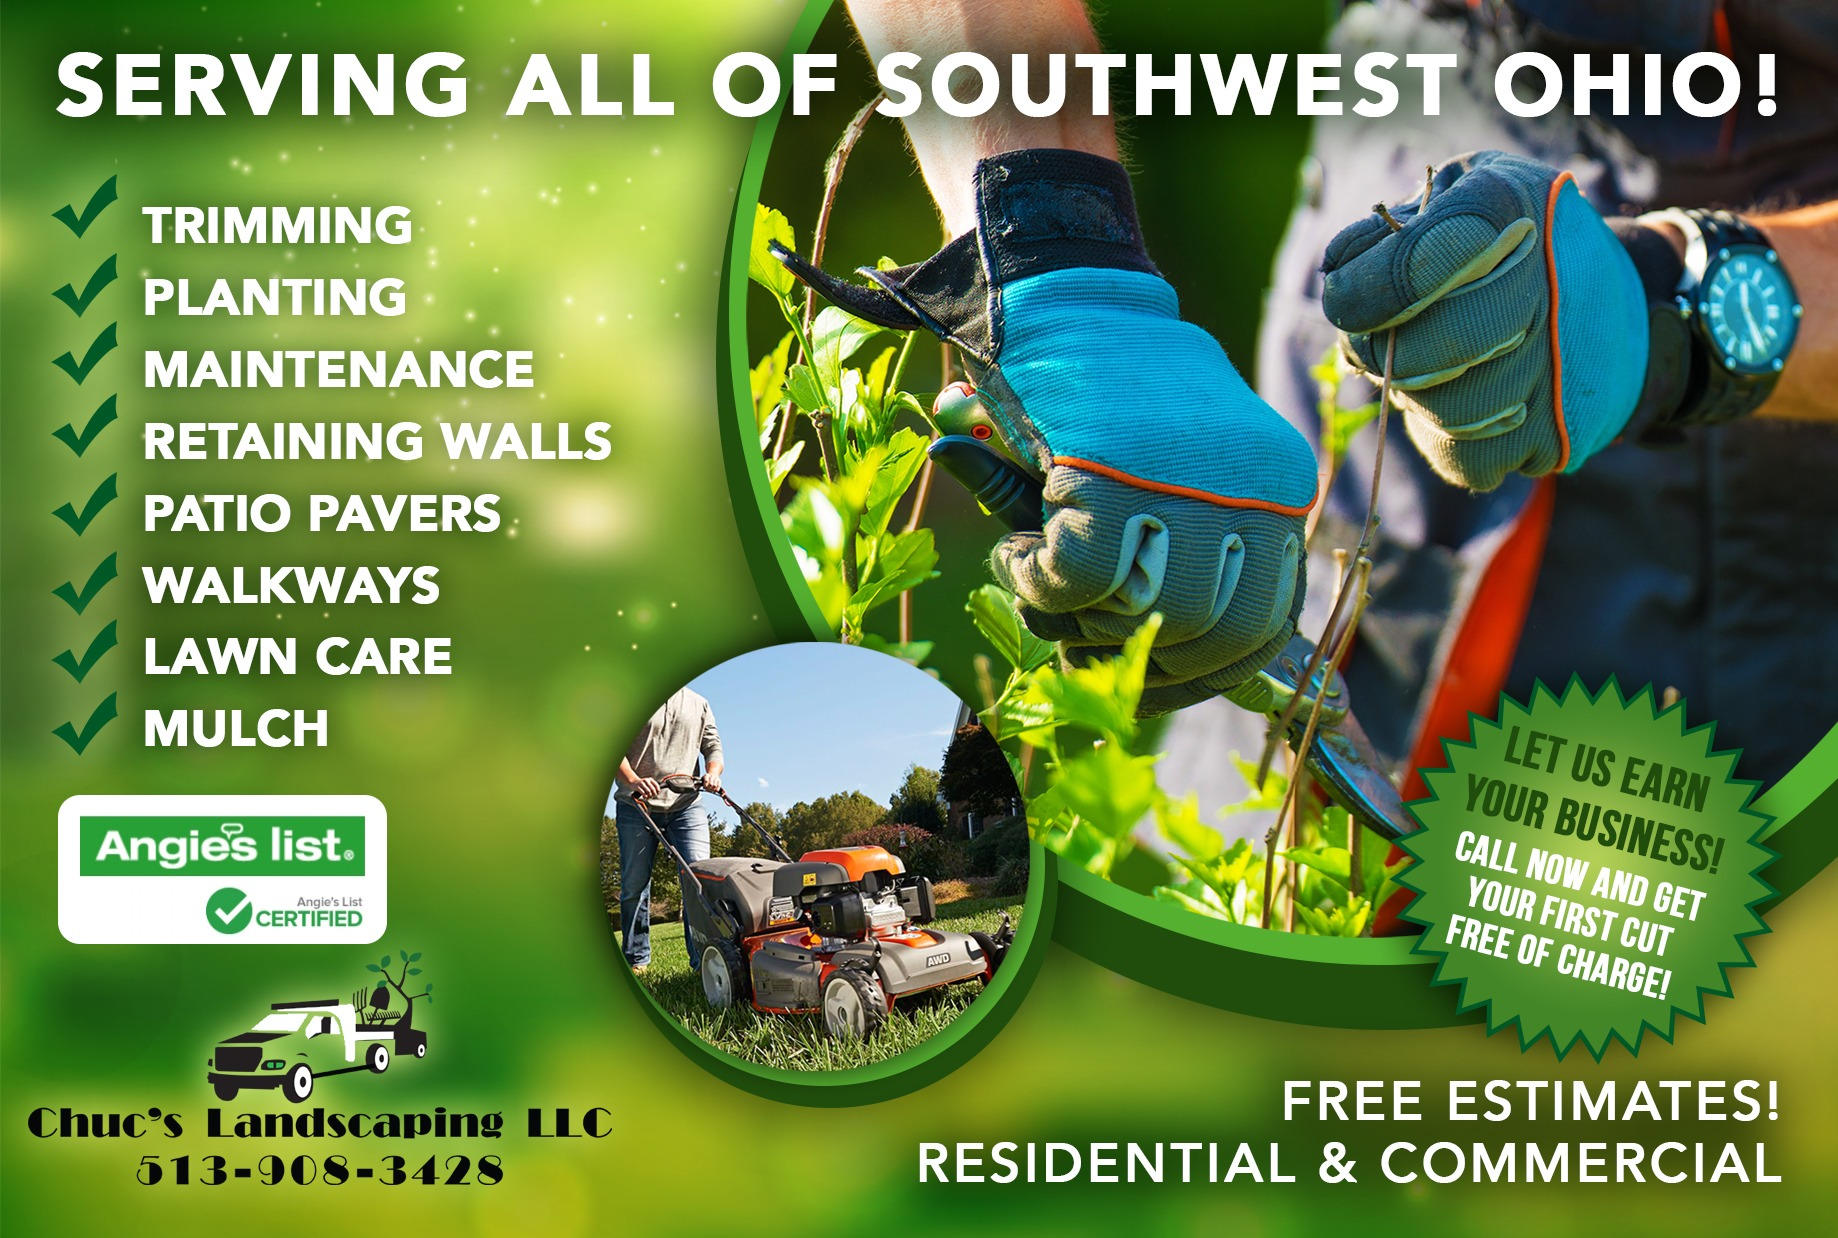 Chuc's Landscaping Flyer Design